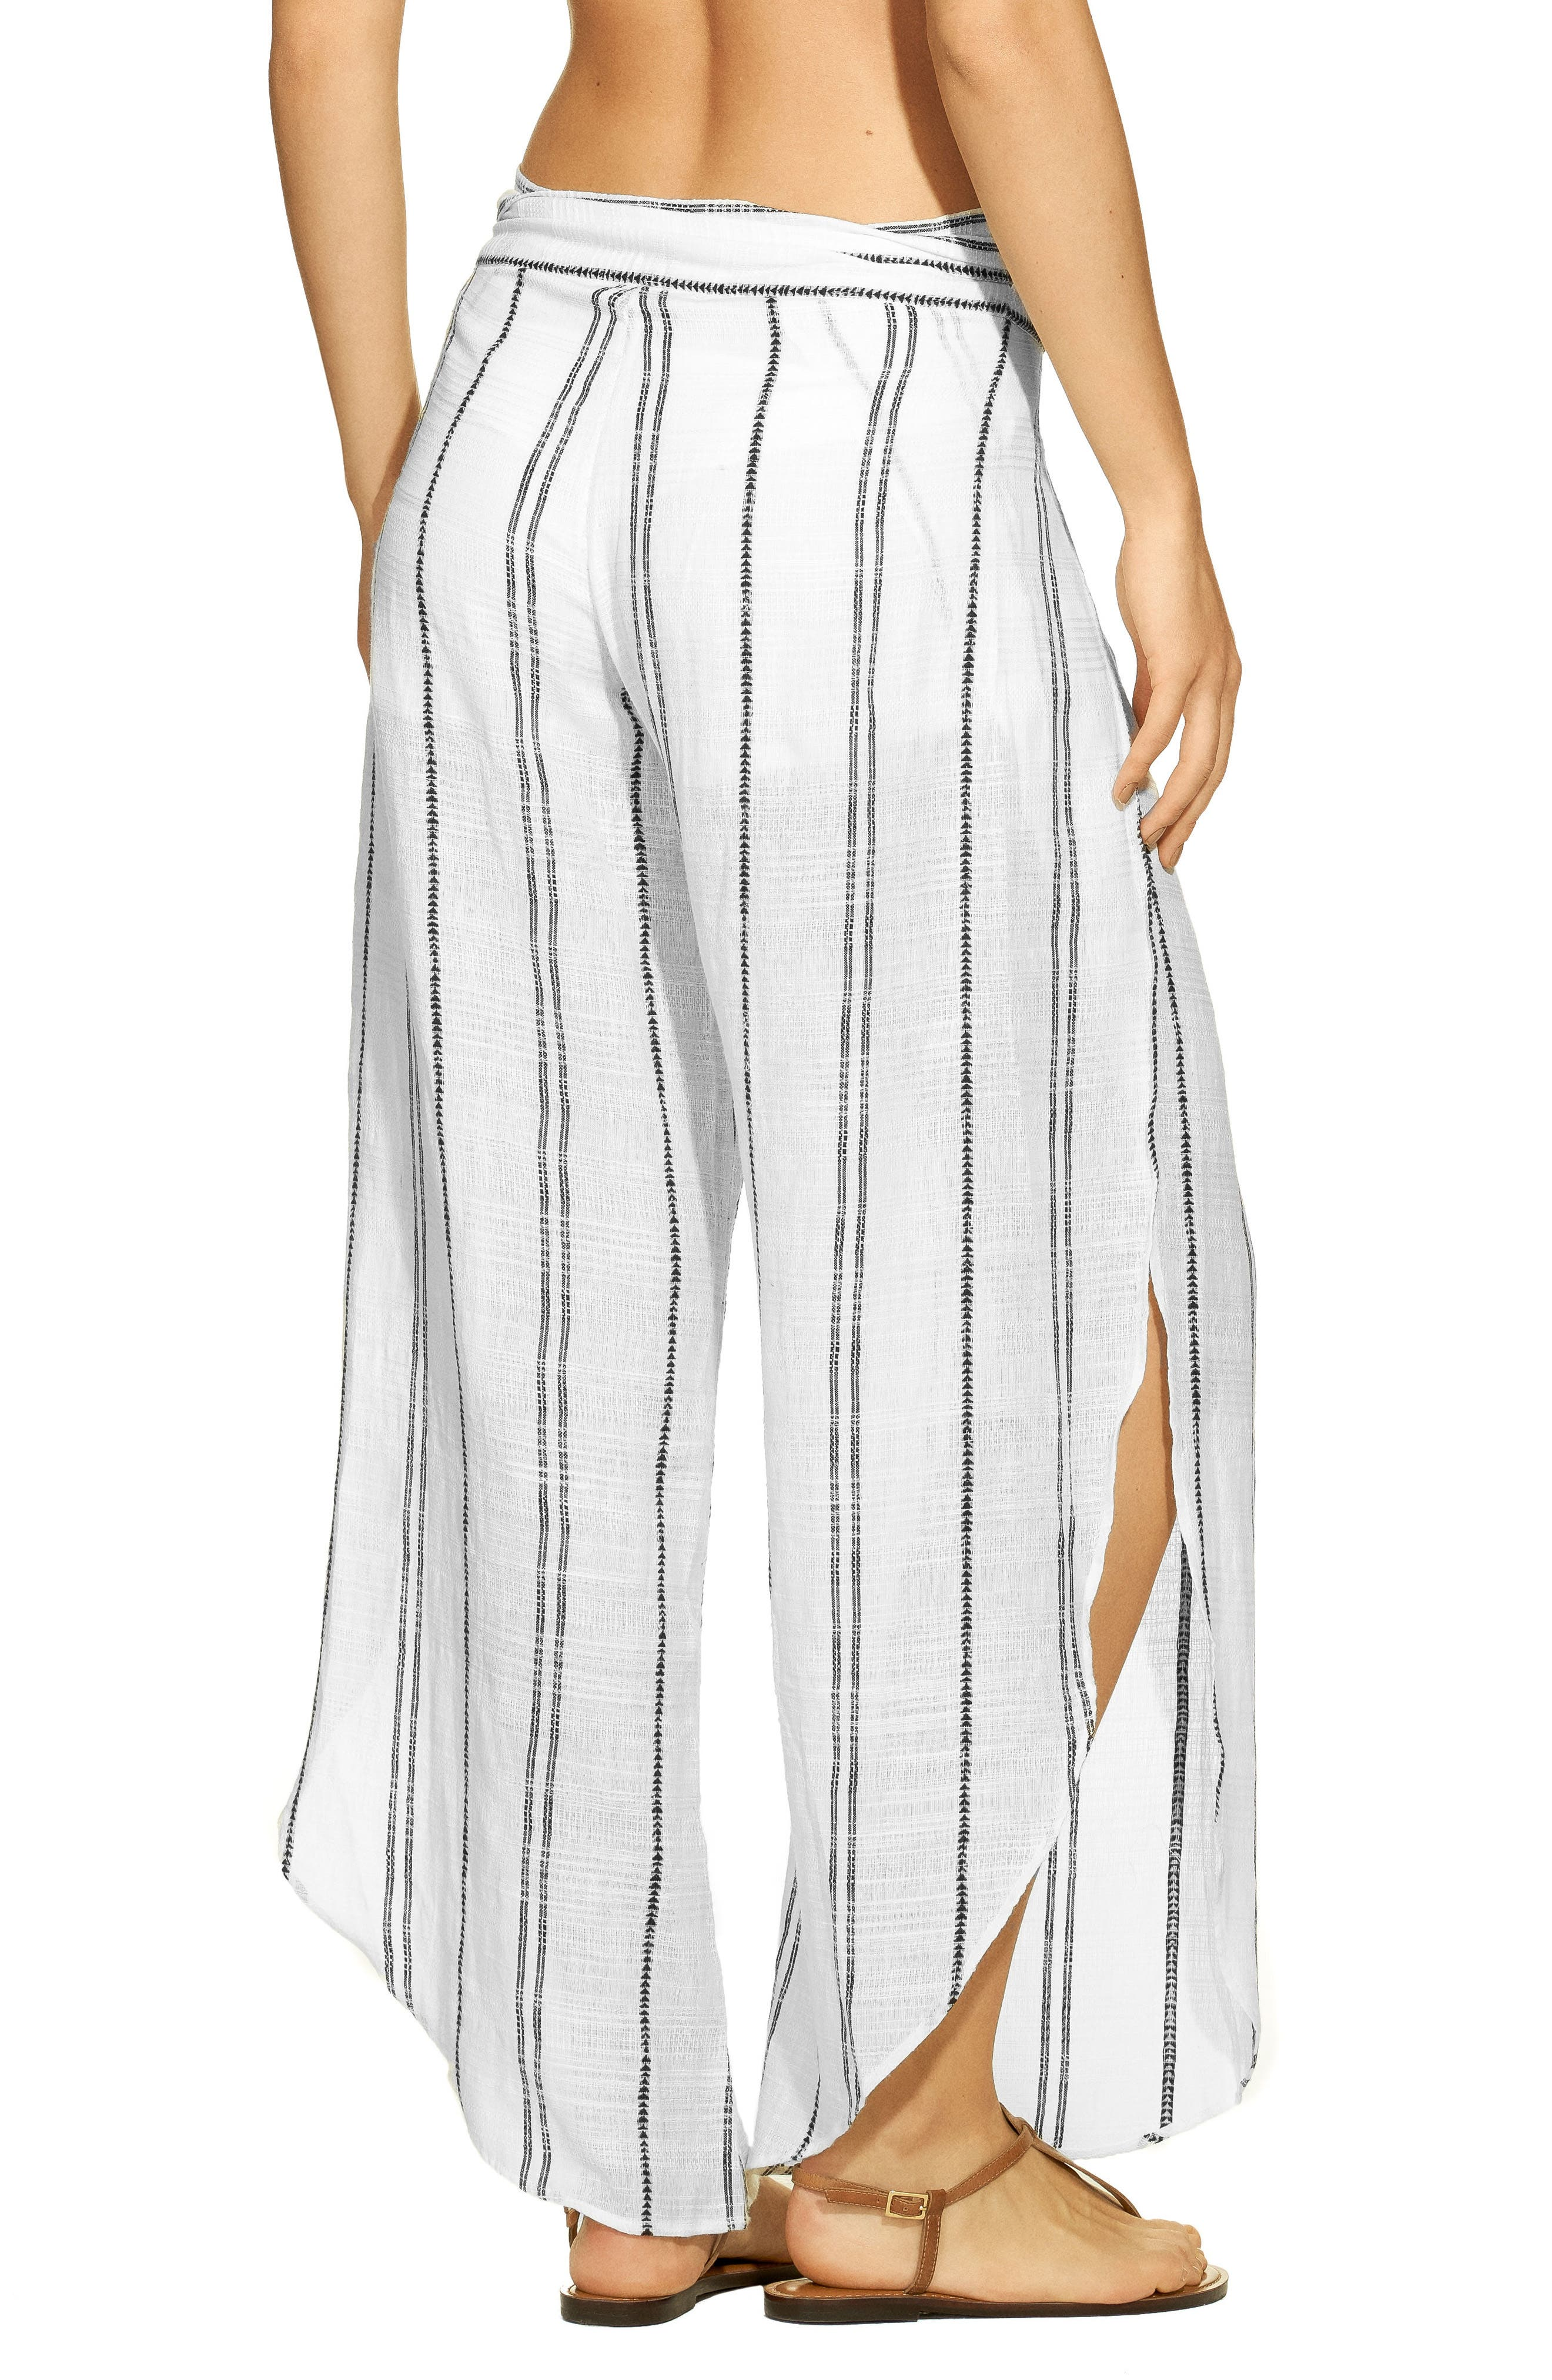 Liz Cover-Up Pants,                             Alternate thumbnail 2, color,                             OFF WHITE